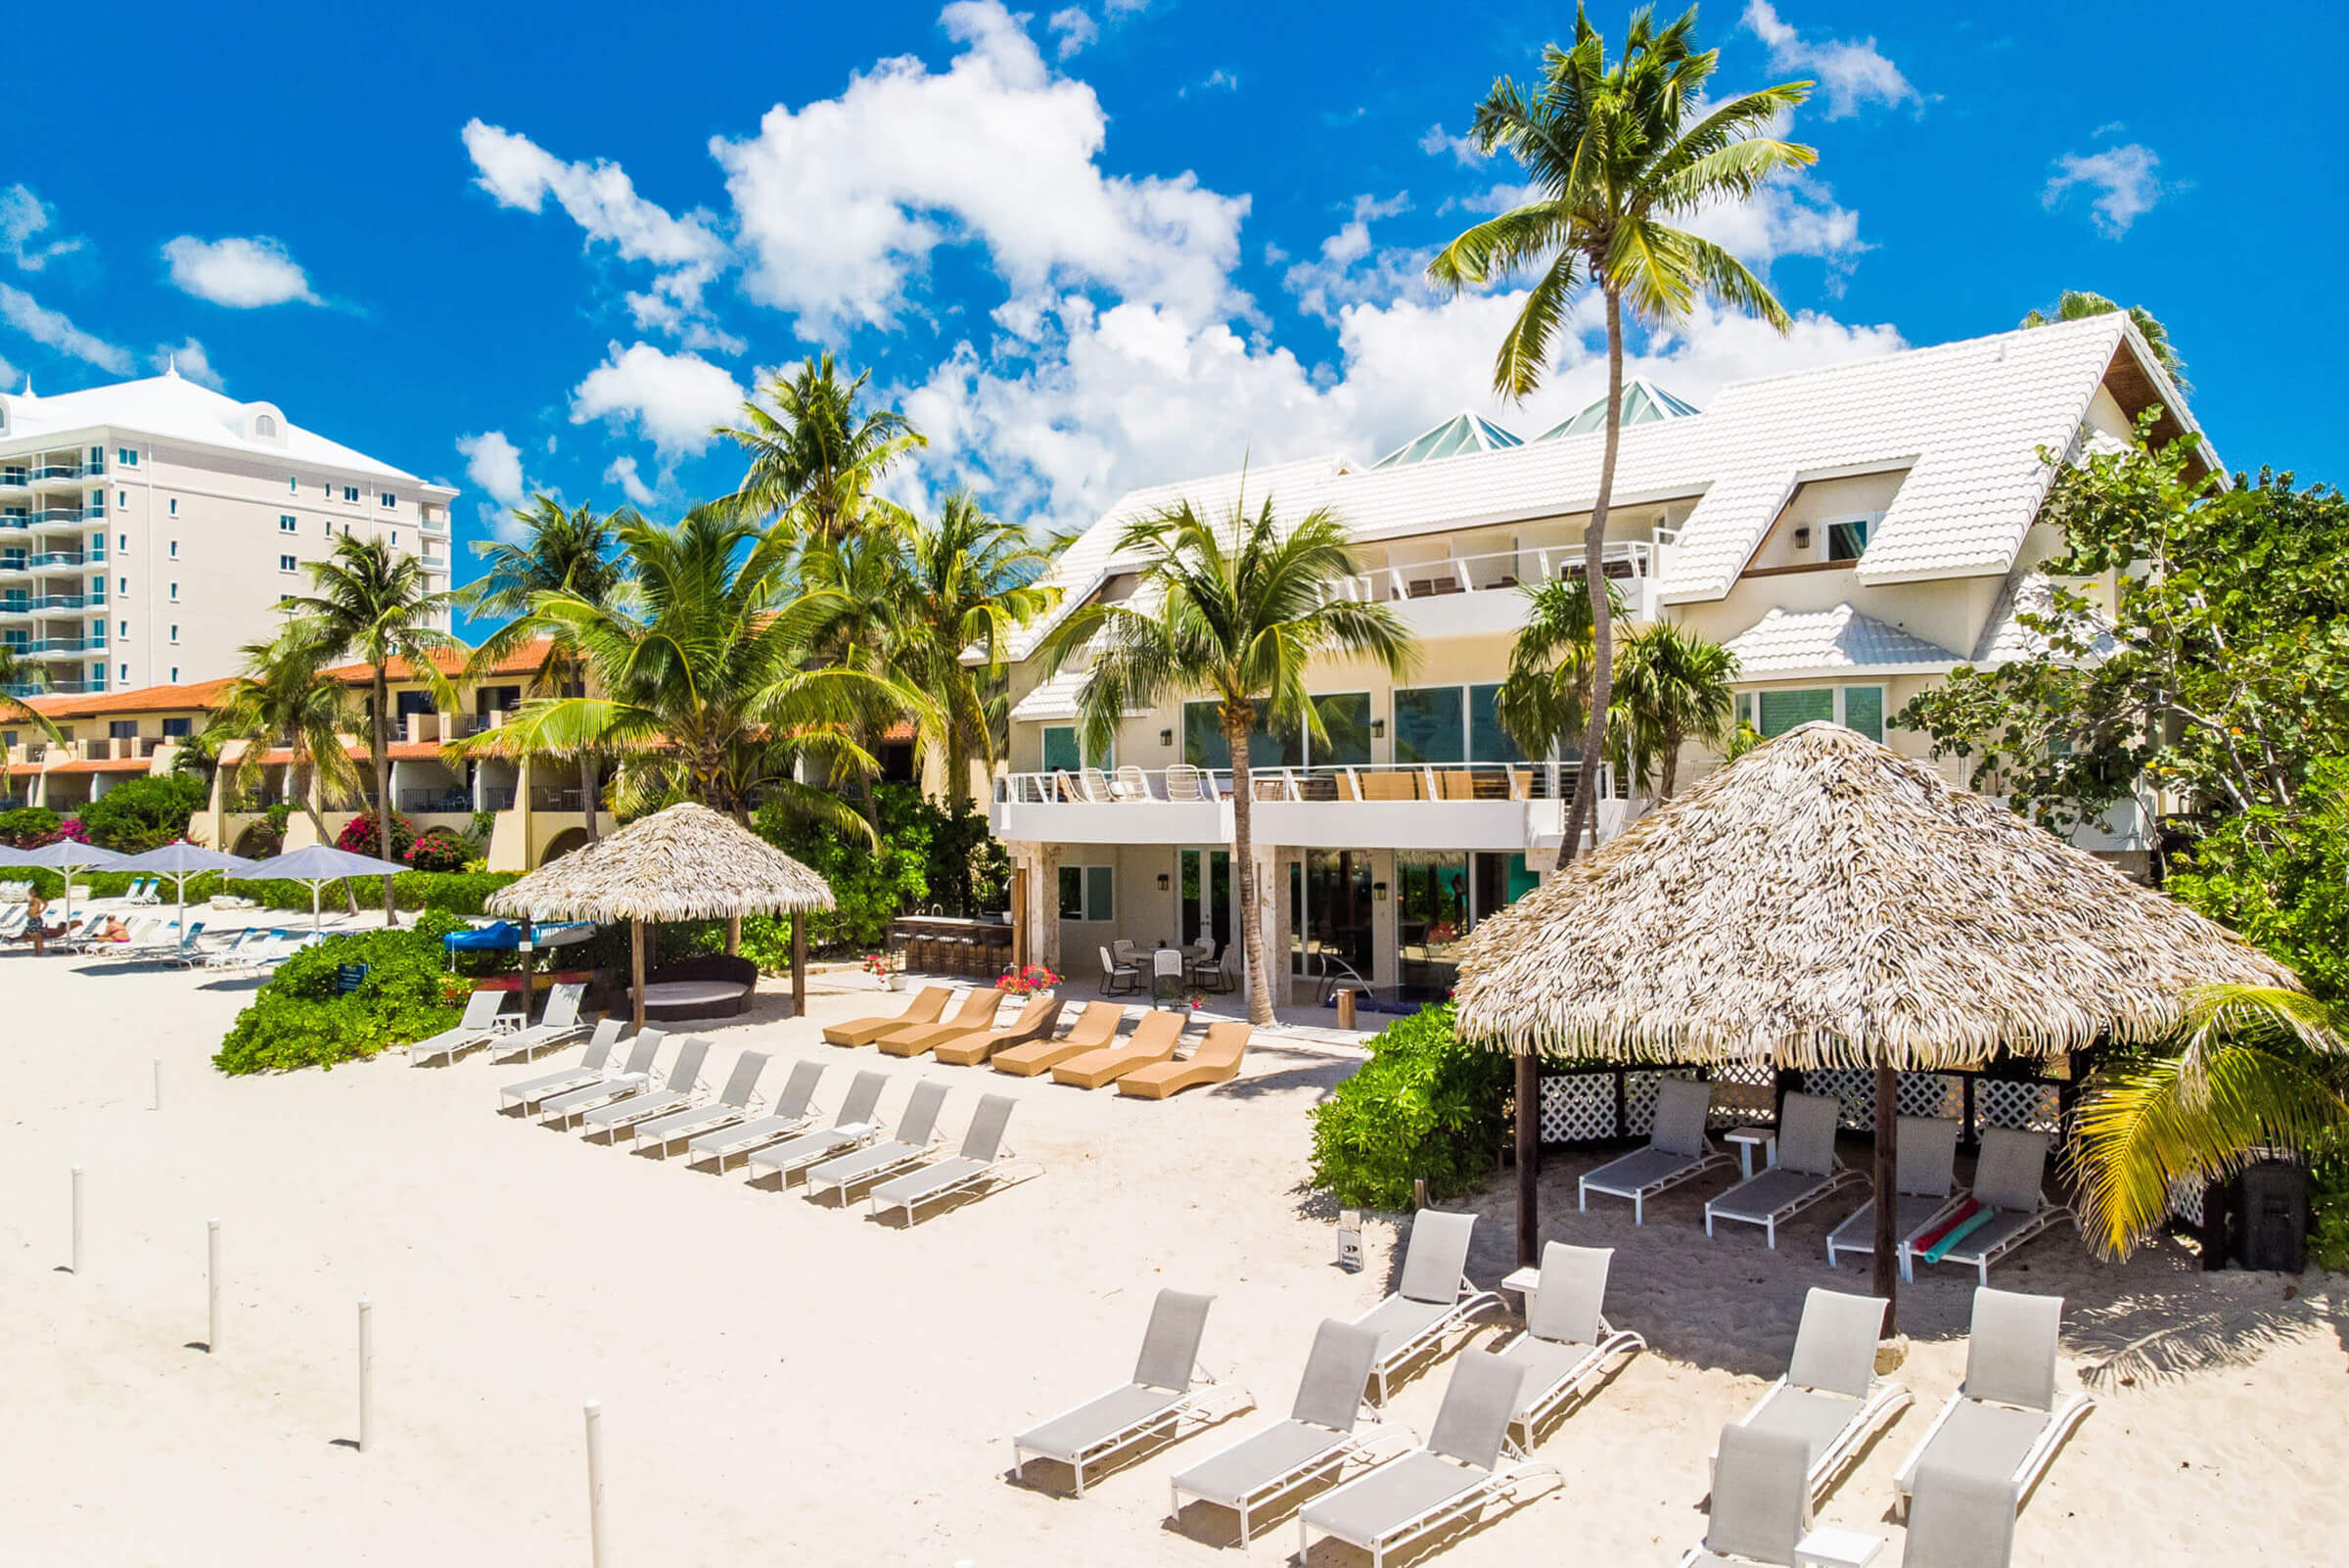 Seascape Villa Cayman Islands Grand Cayman Beachfront Luxury Caribbean Vacation and Staycations Seven Mile Beach